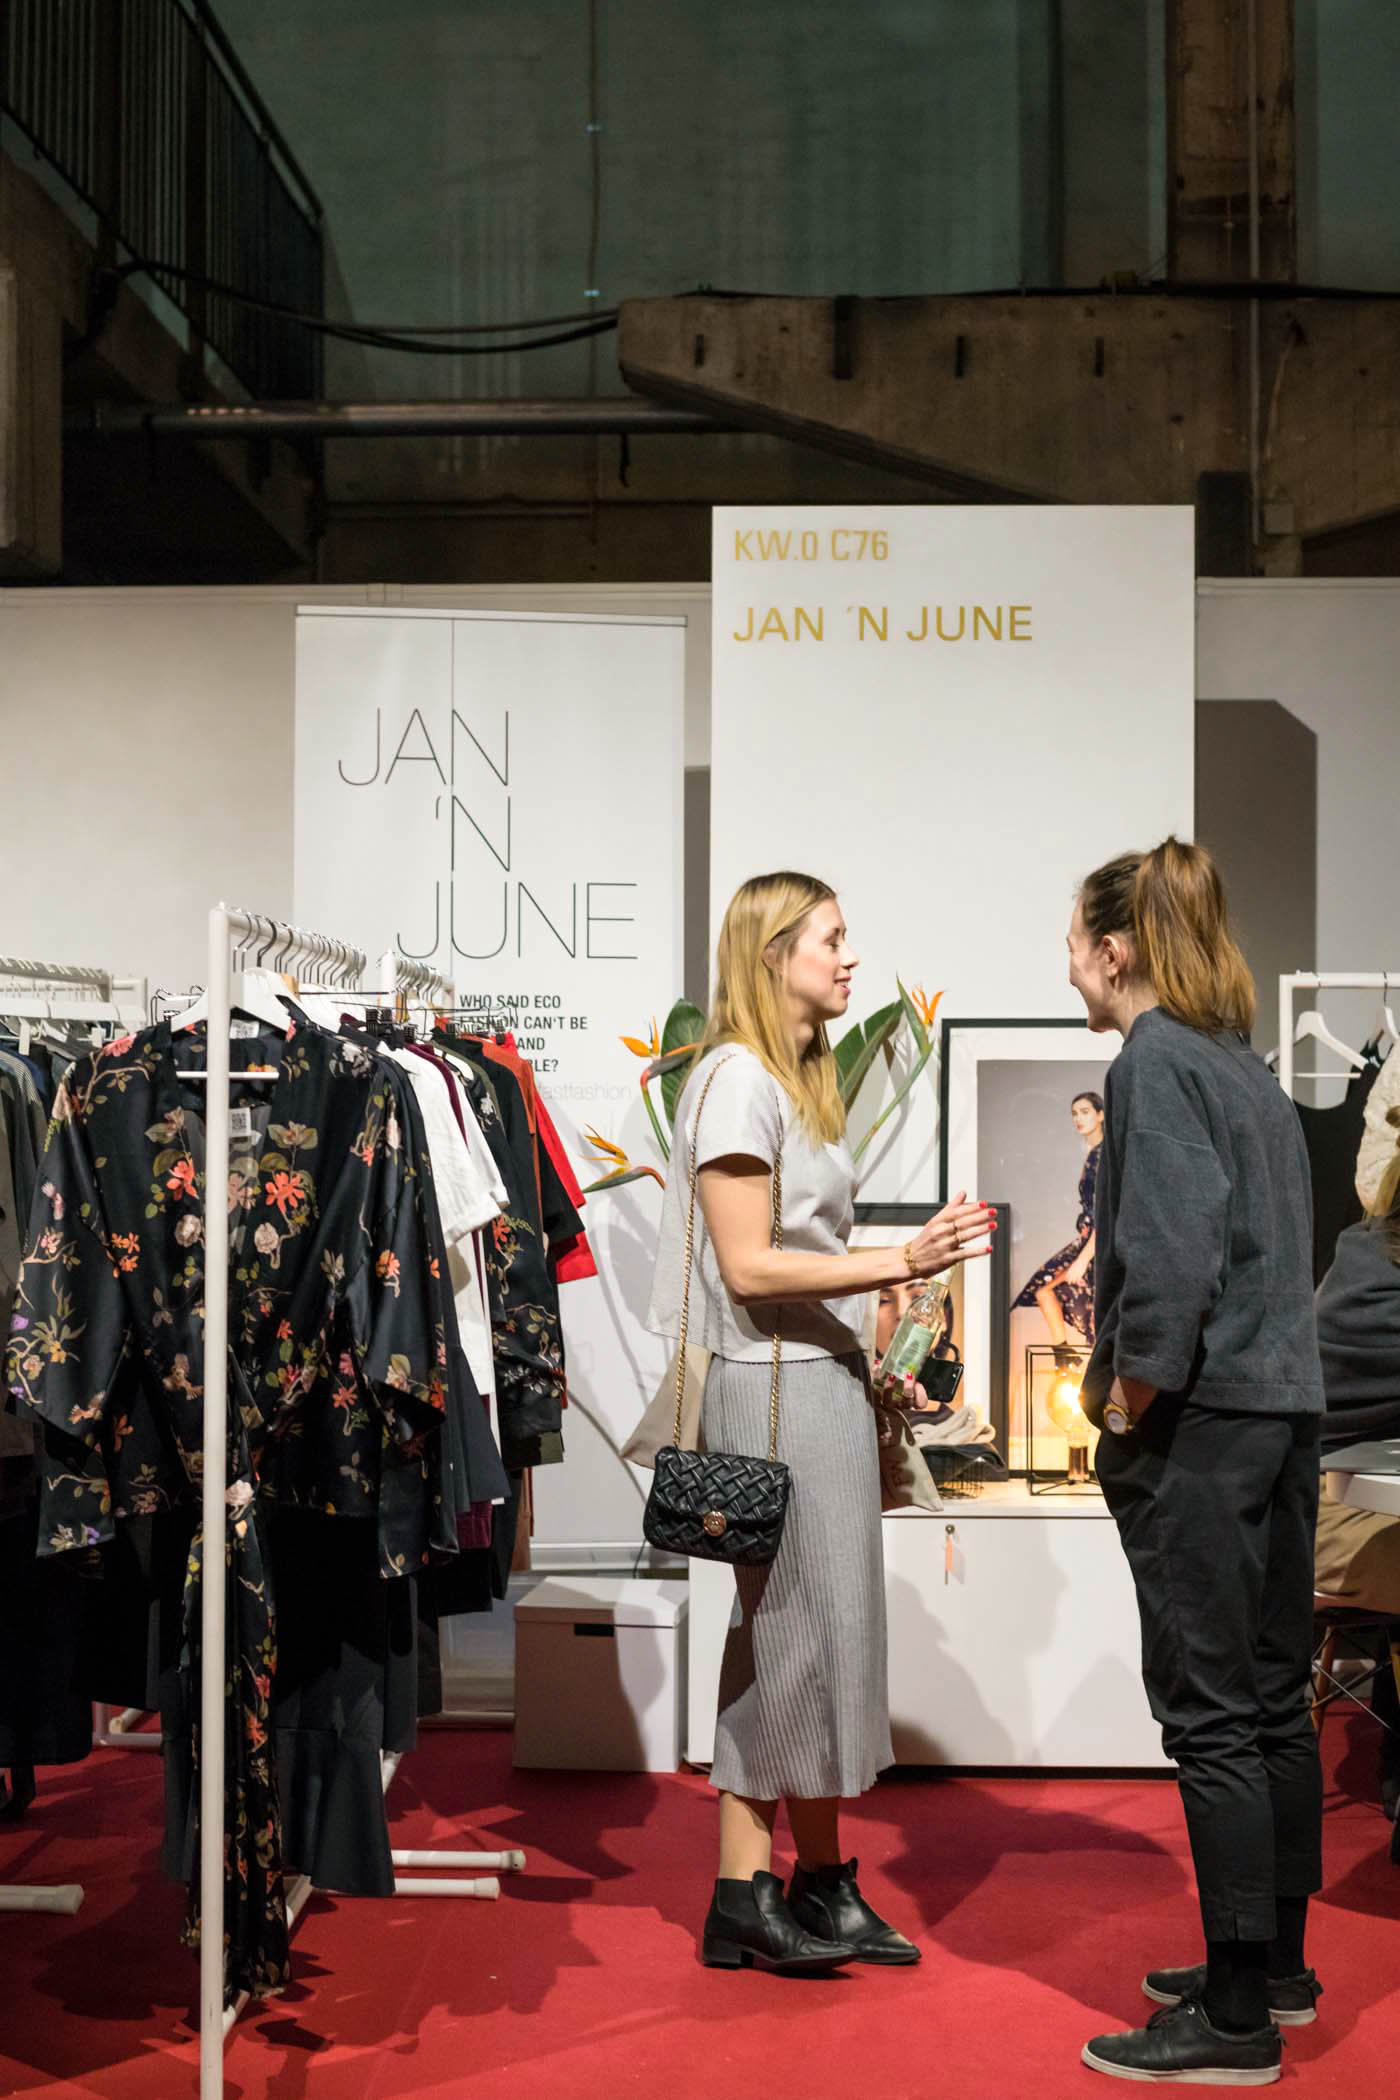 Jan'n June, green showroom